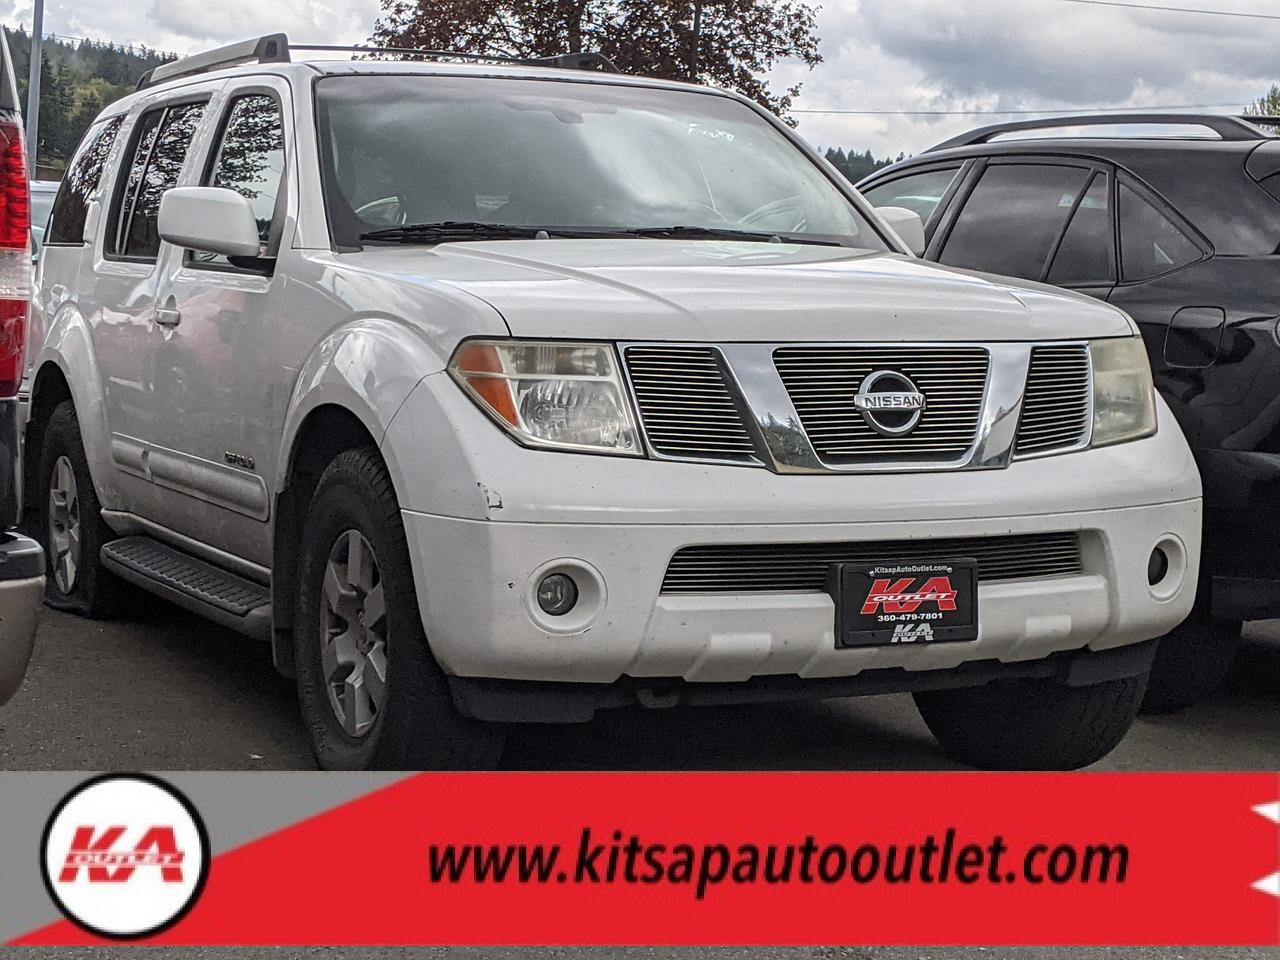 2005 Nissan Pathfinder XE Sport Utility 4D Port Orchard WA